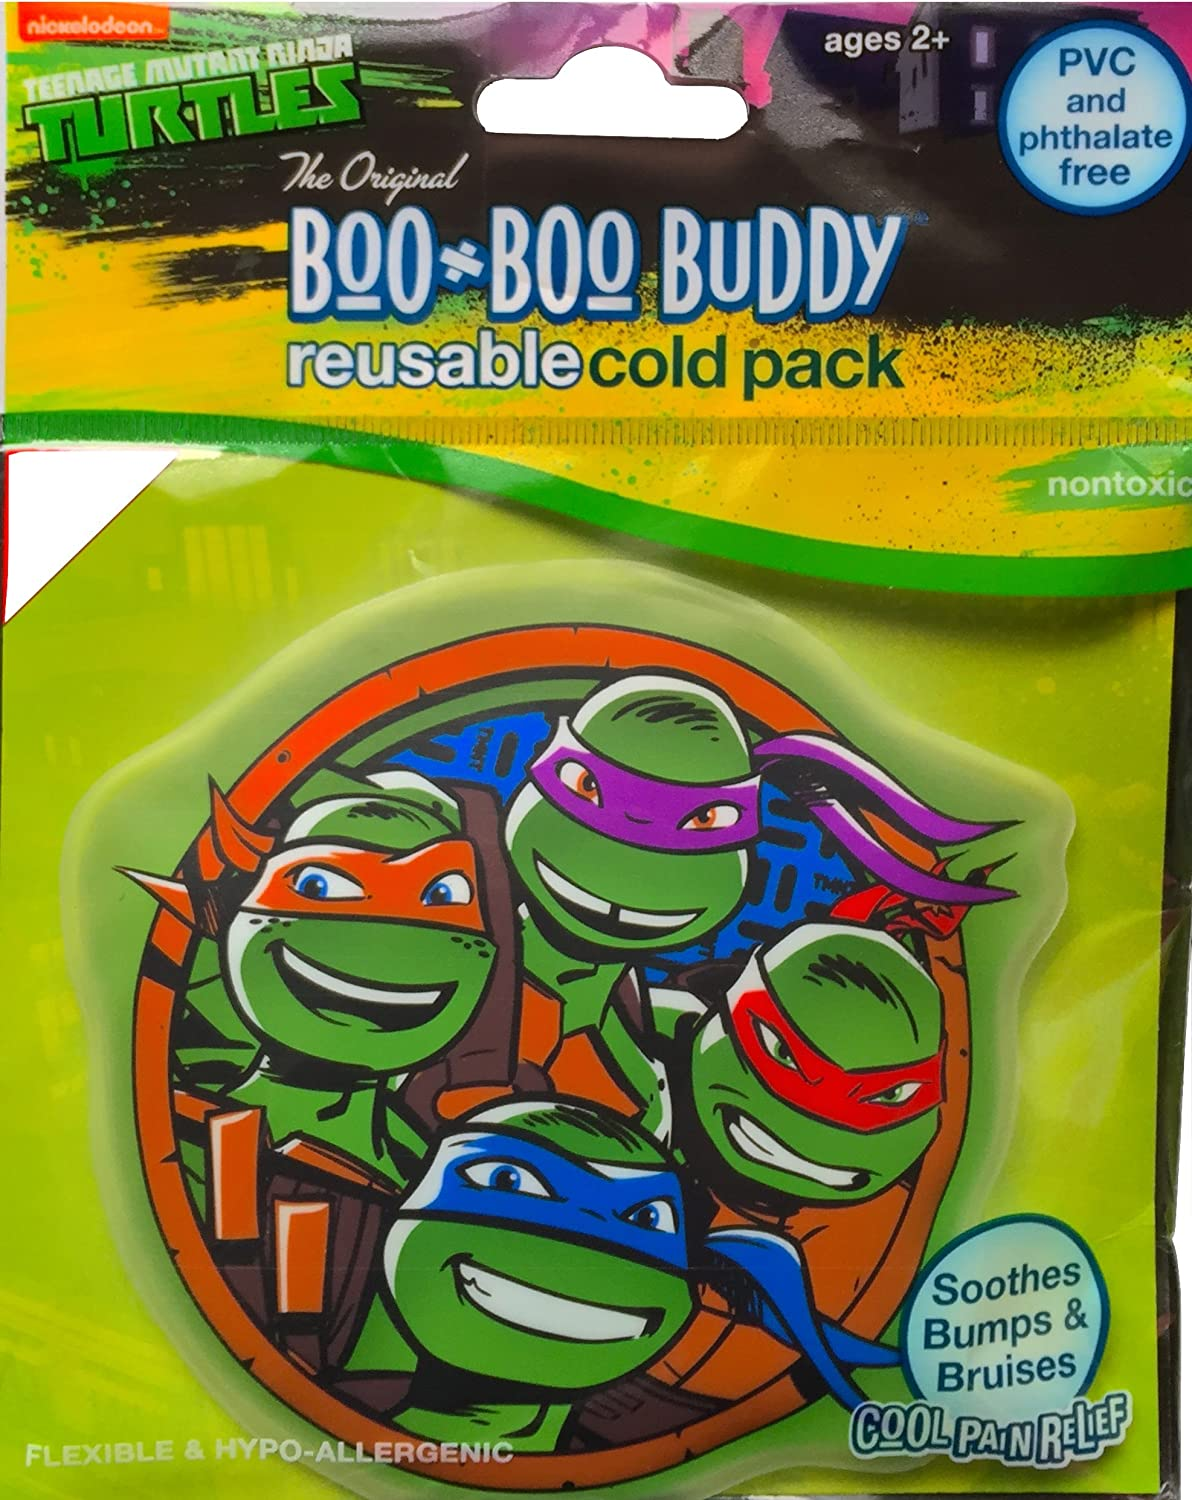 Teenage Mutant Children's Cold Pack Boo Boo Buddy Reusable Cold Pack Soothes Bumps and Bruises Cold Pain Relief for Outdoor Accidents